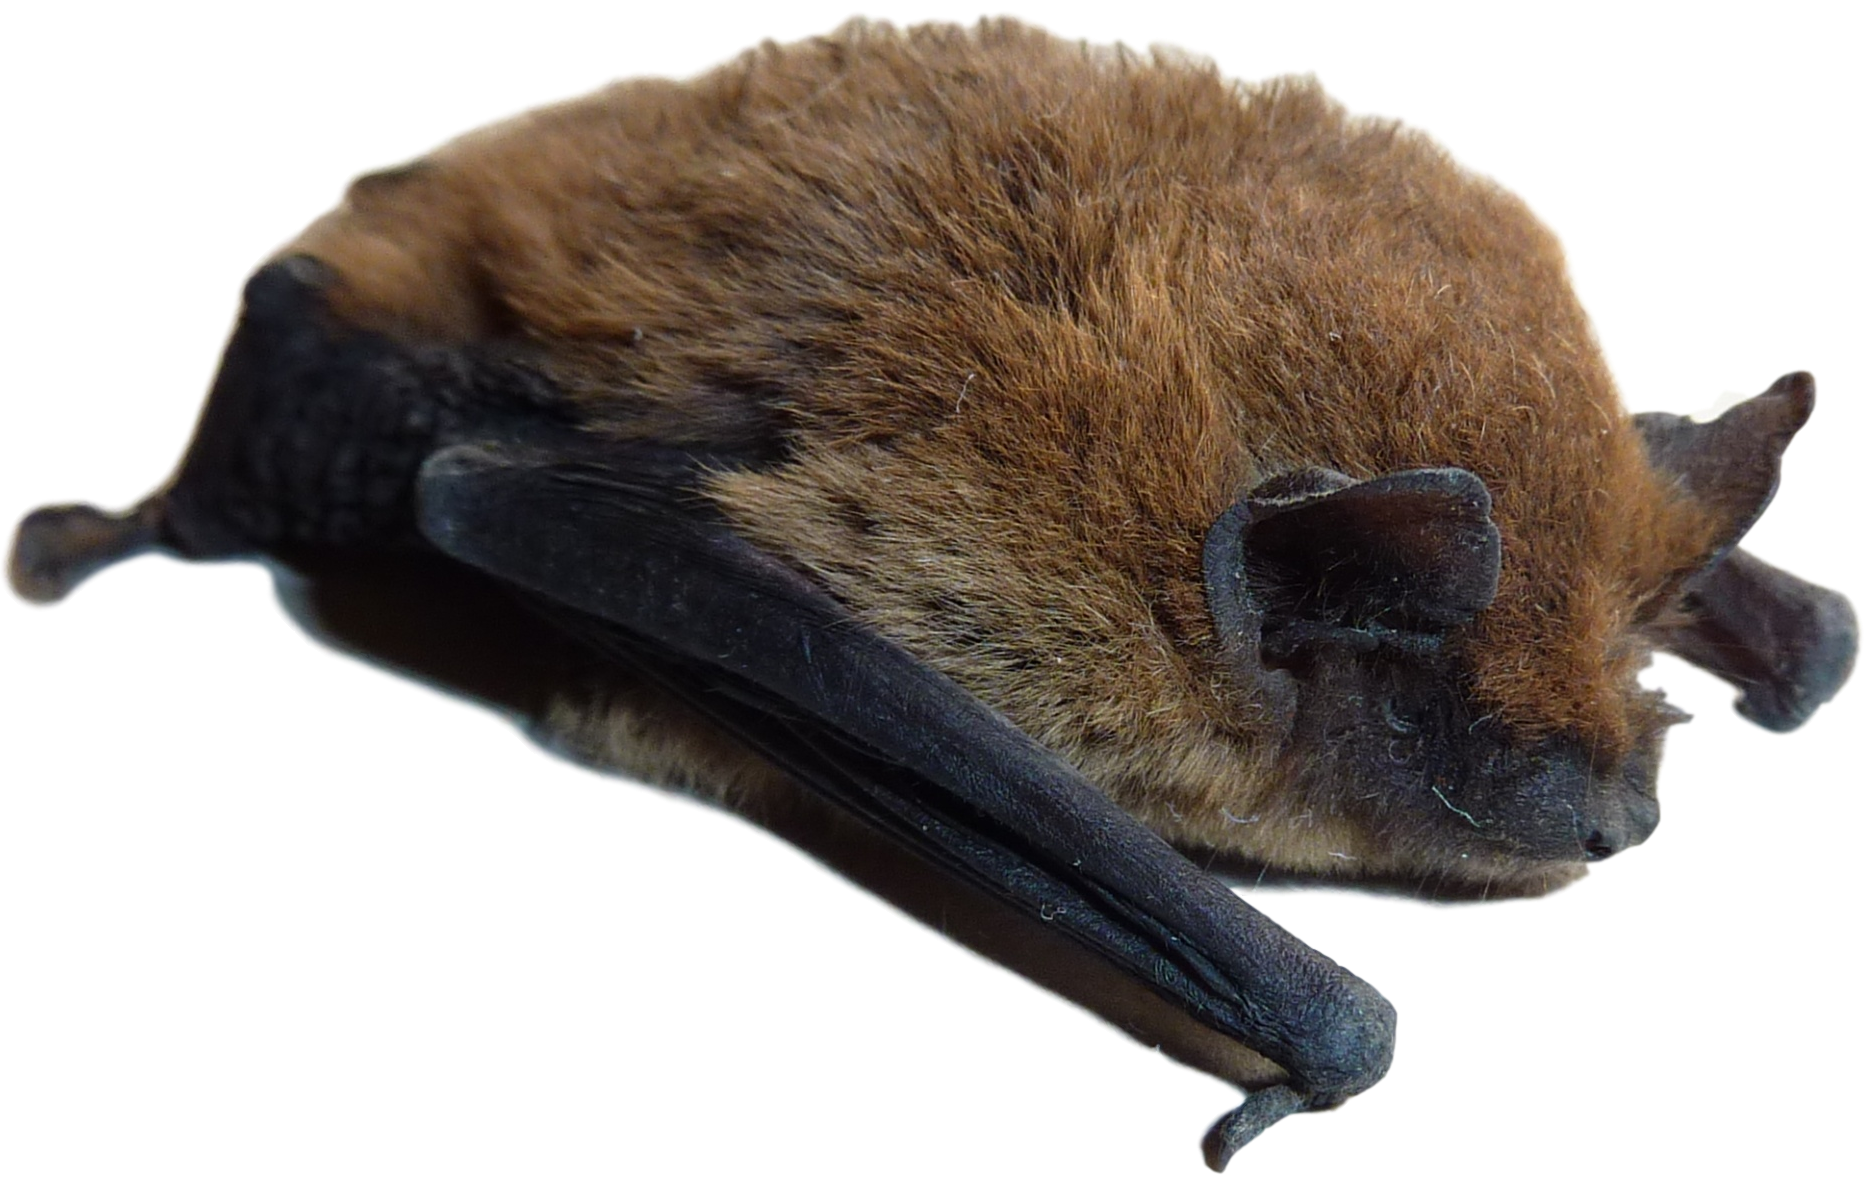 Michigan Bat Control Bat Pest Control Services